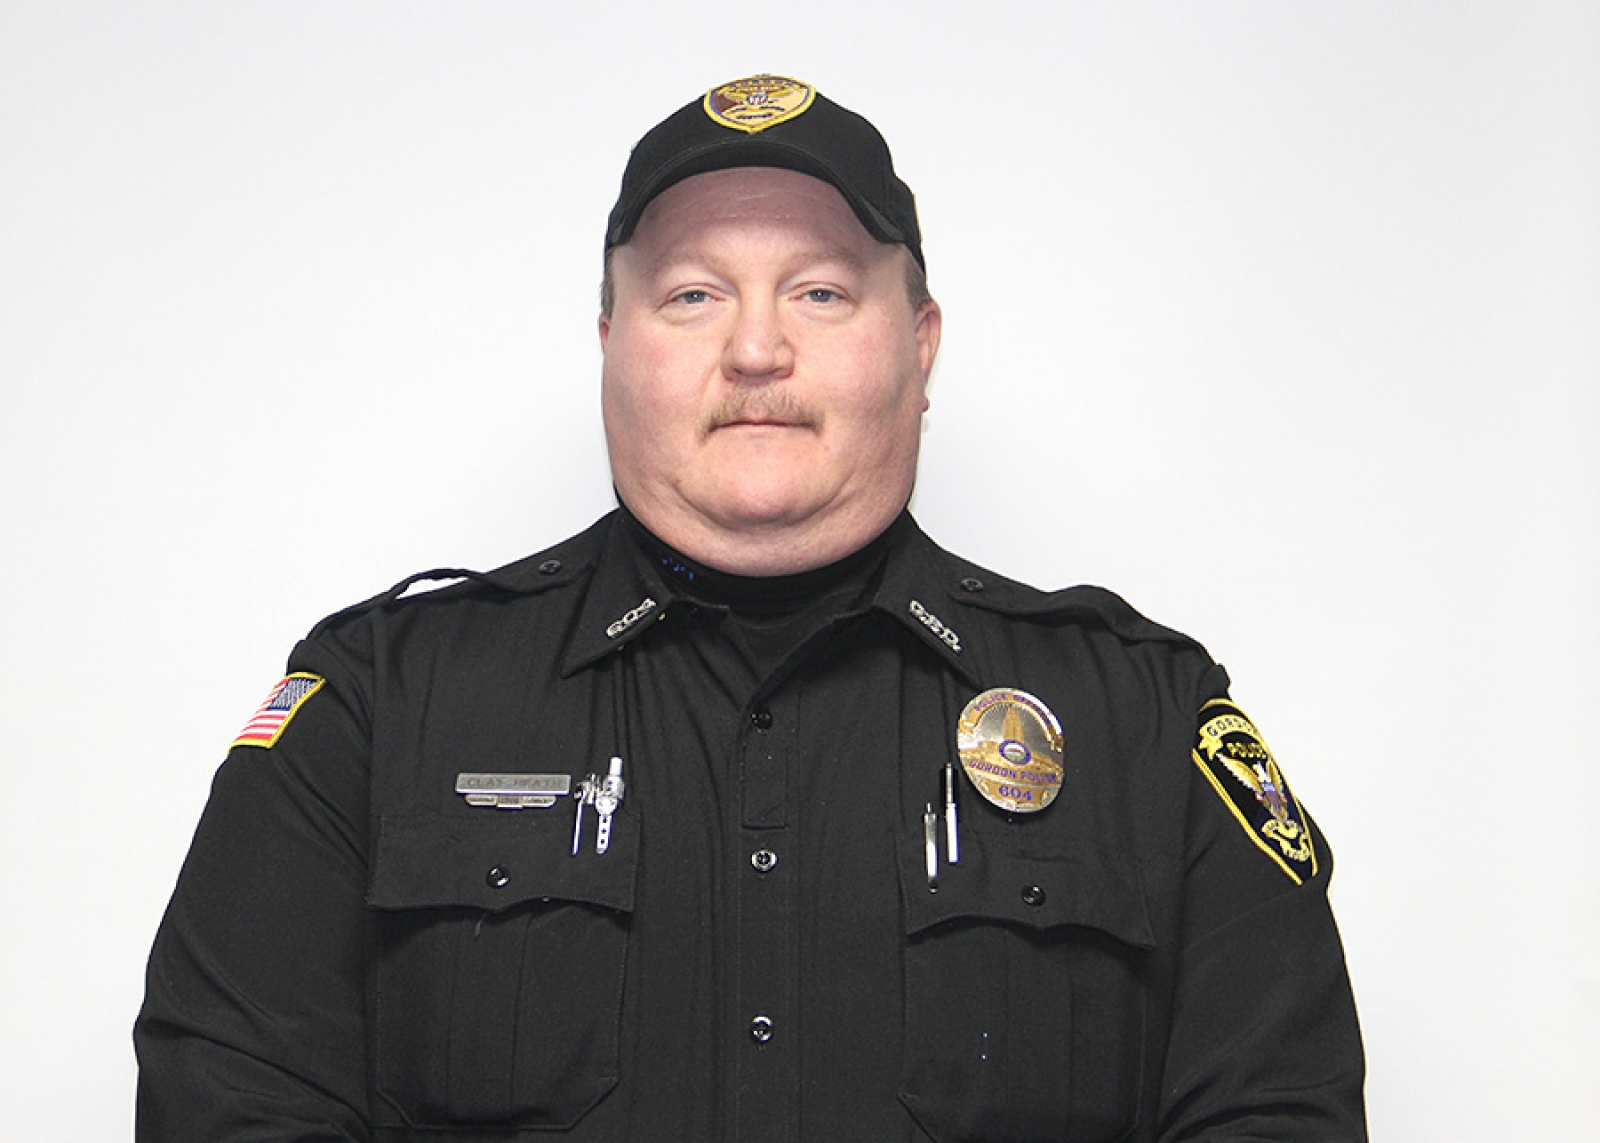 Heath named Gordon Chief of Police